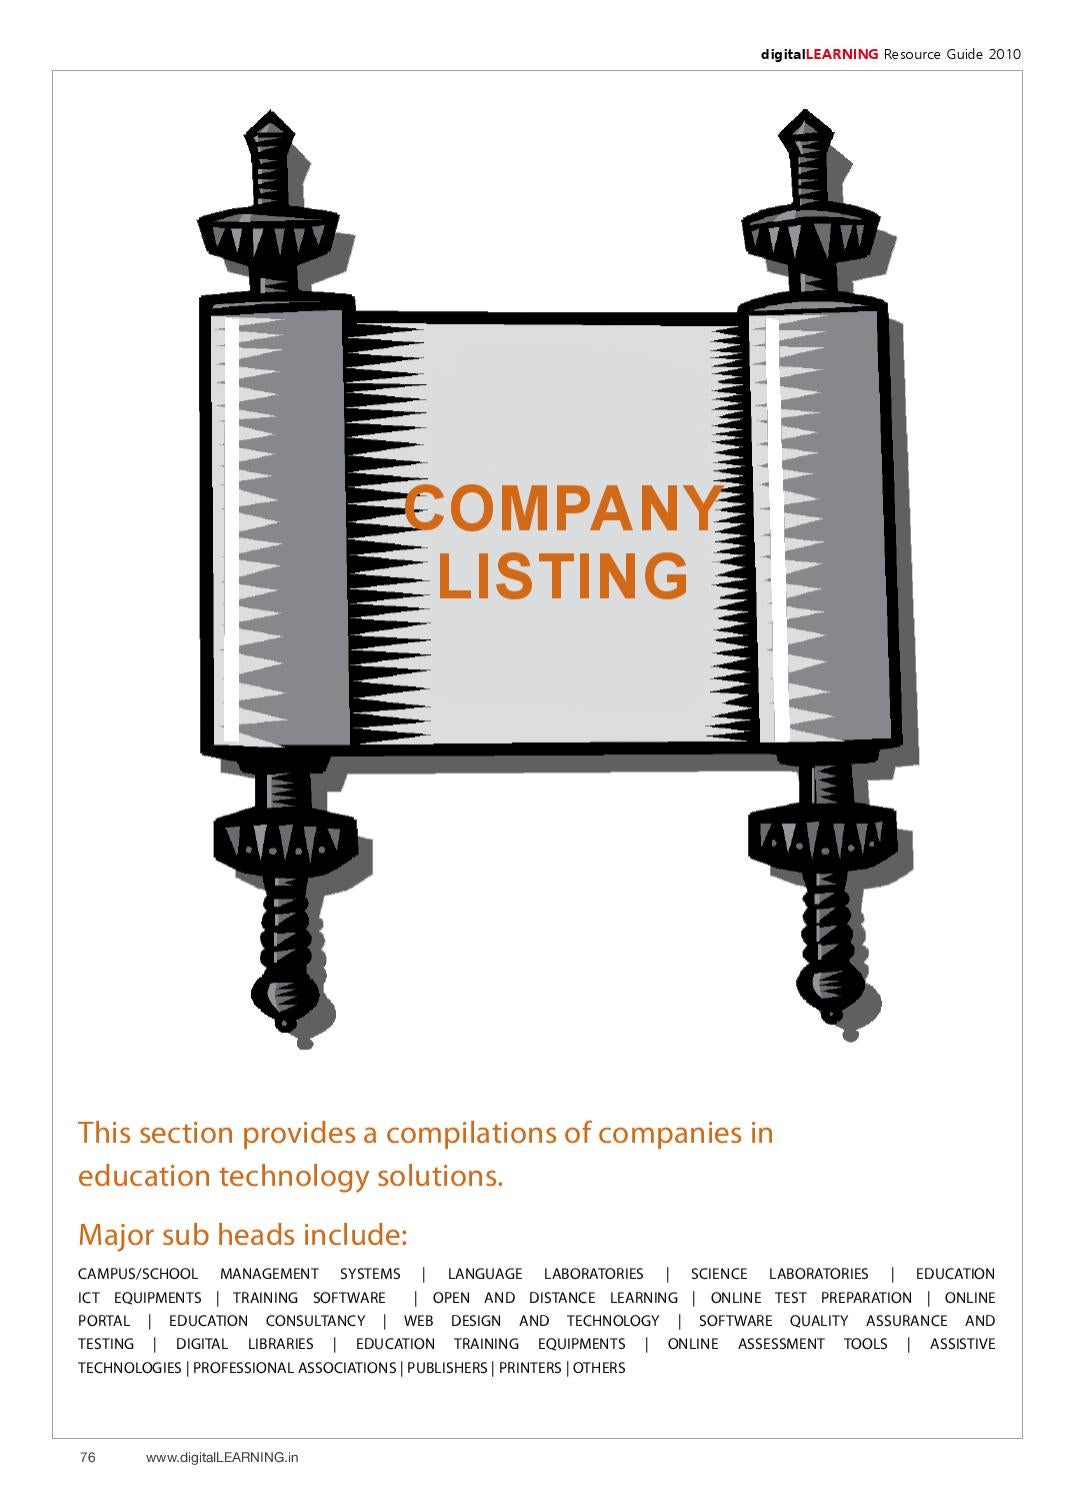 digitalLEARNING-June-2010-[76-87]-Company Listing by digital